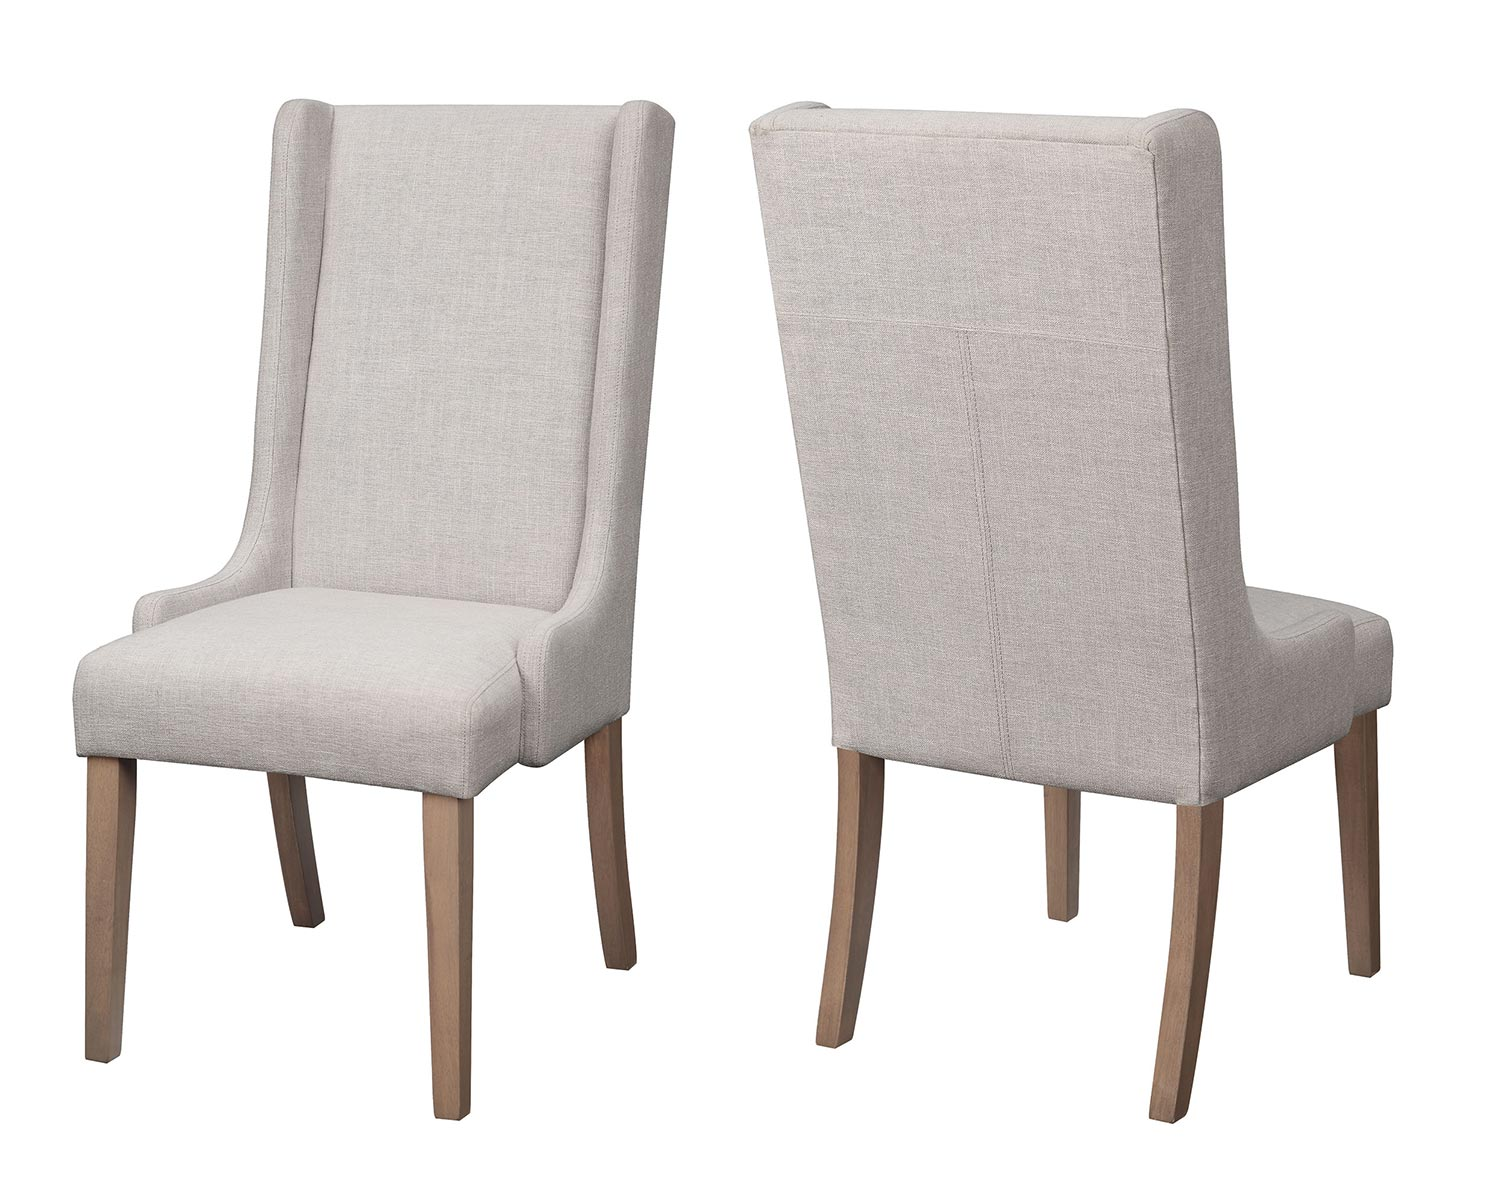 dining to parson chair grey change item product furniture studded click chairs york image